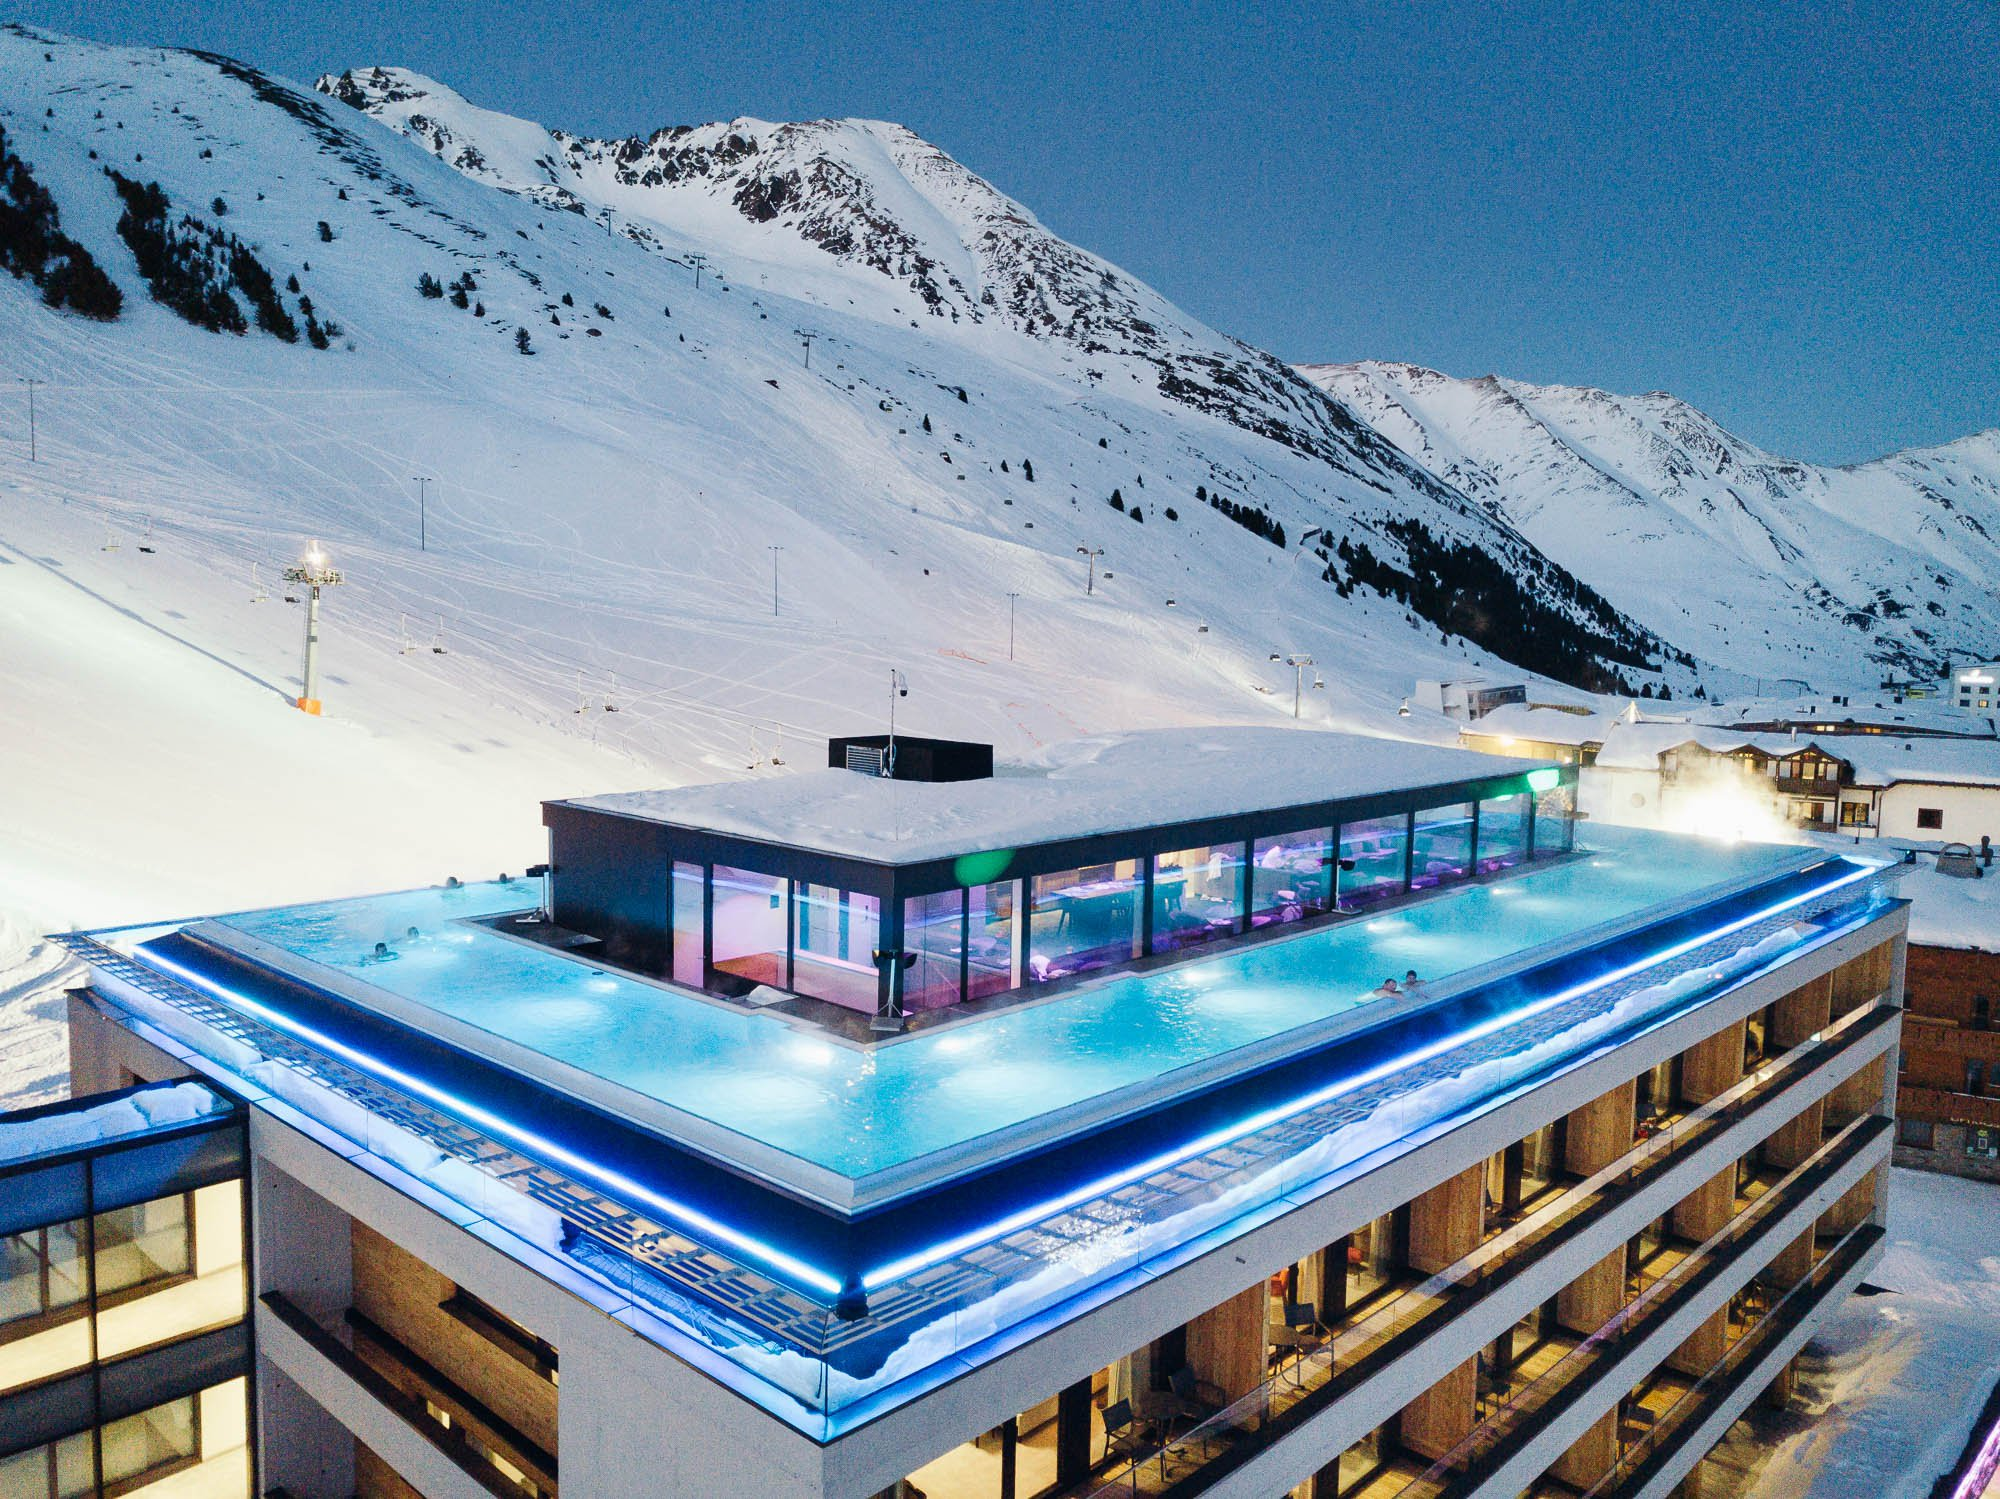 Great luxury in the middle of the Tyrol: the Mooshaus Endless Sky Pool nearly 100 metres long